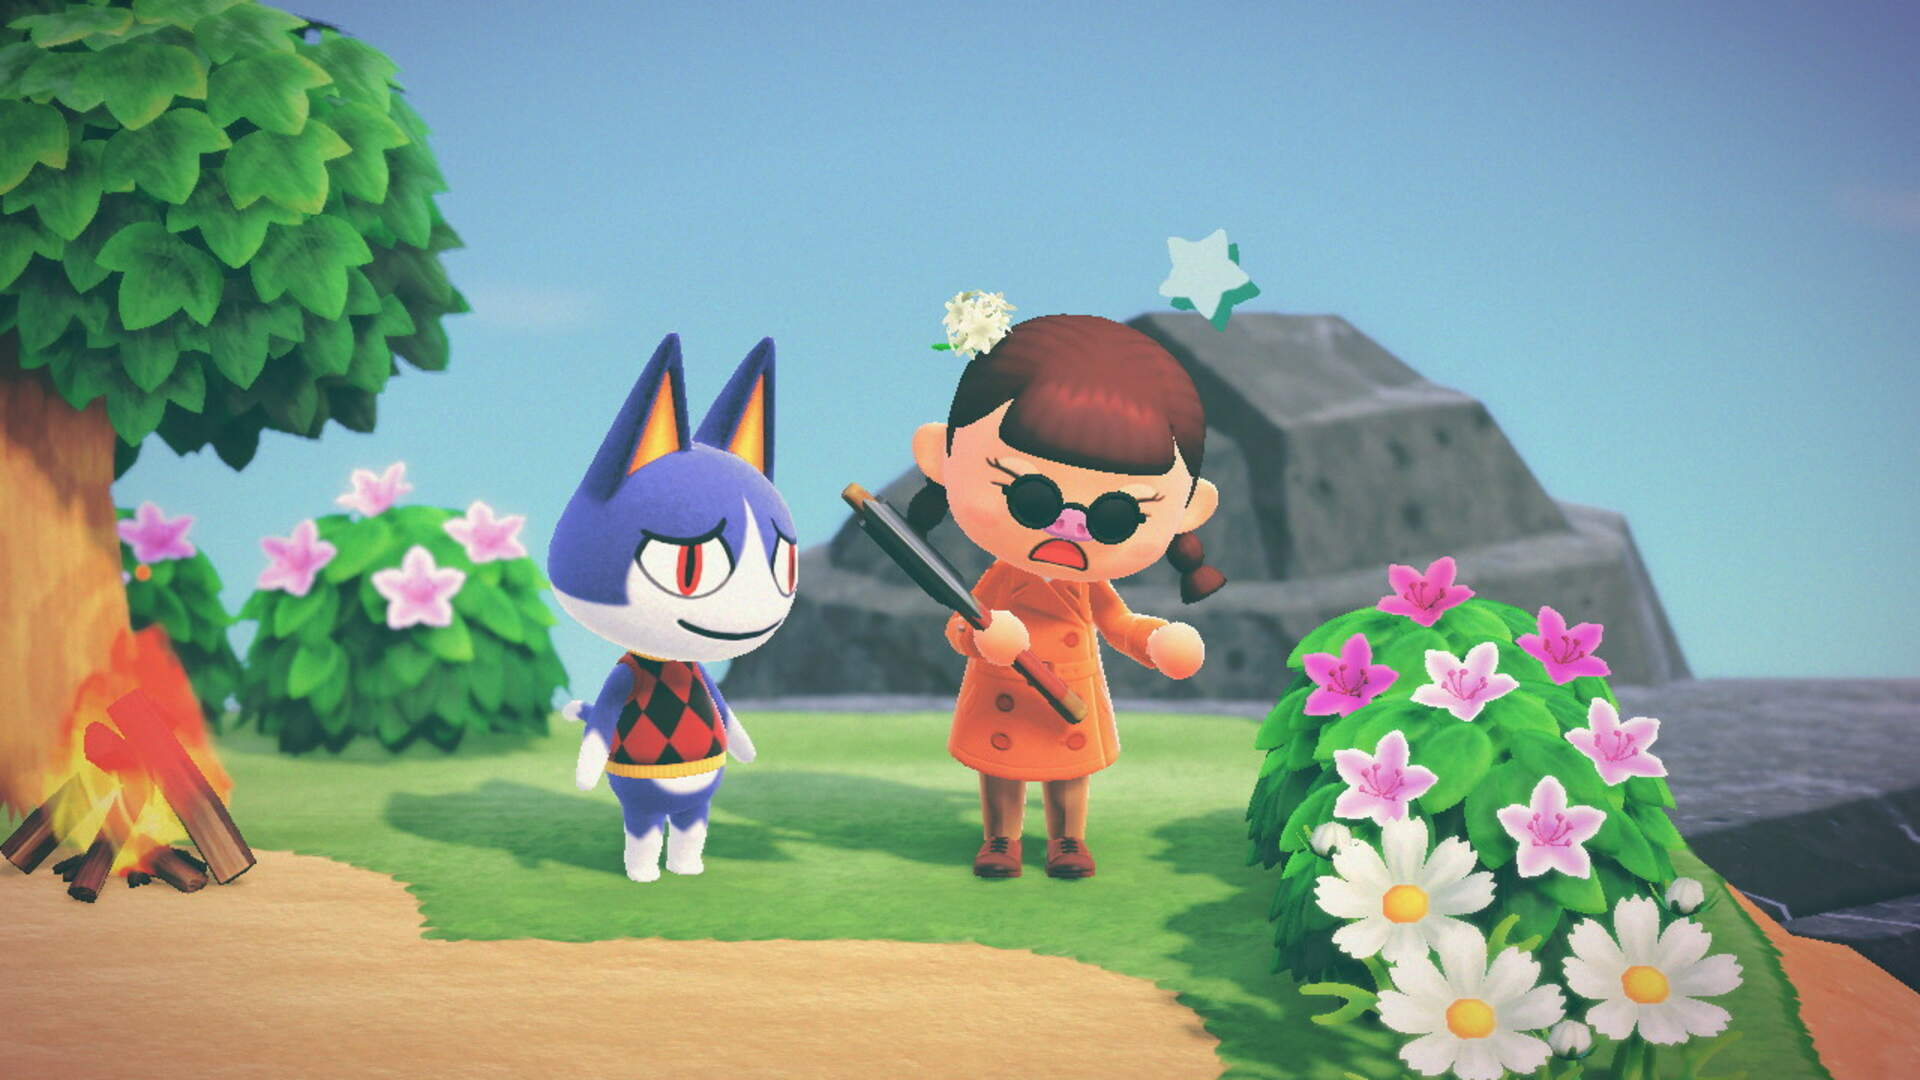 Animal Crossing New Horizons: How to Back Up and Restore Island Save Data